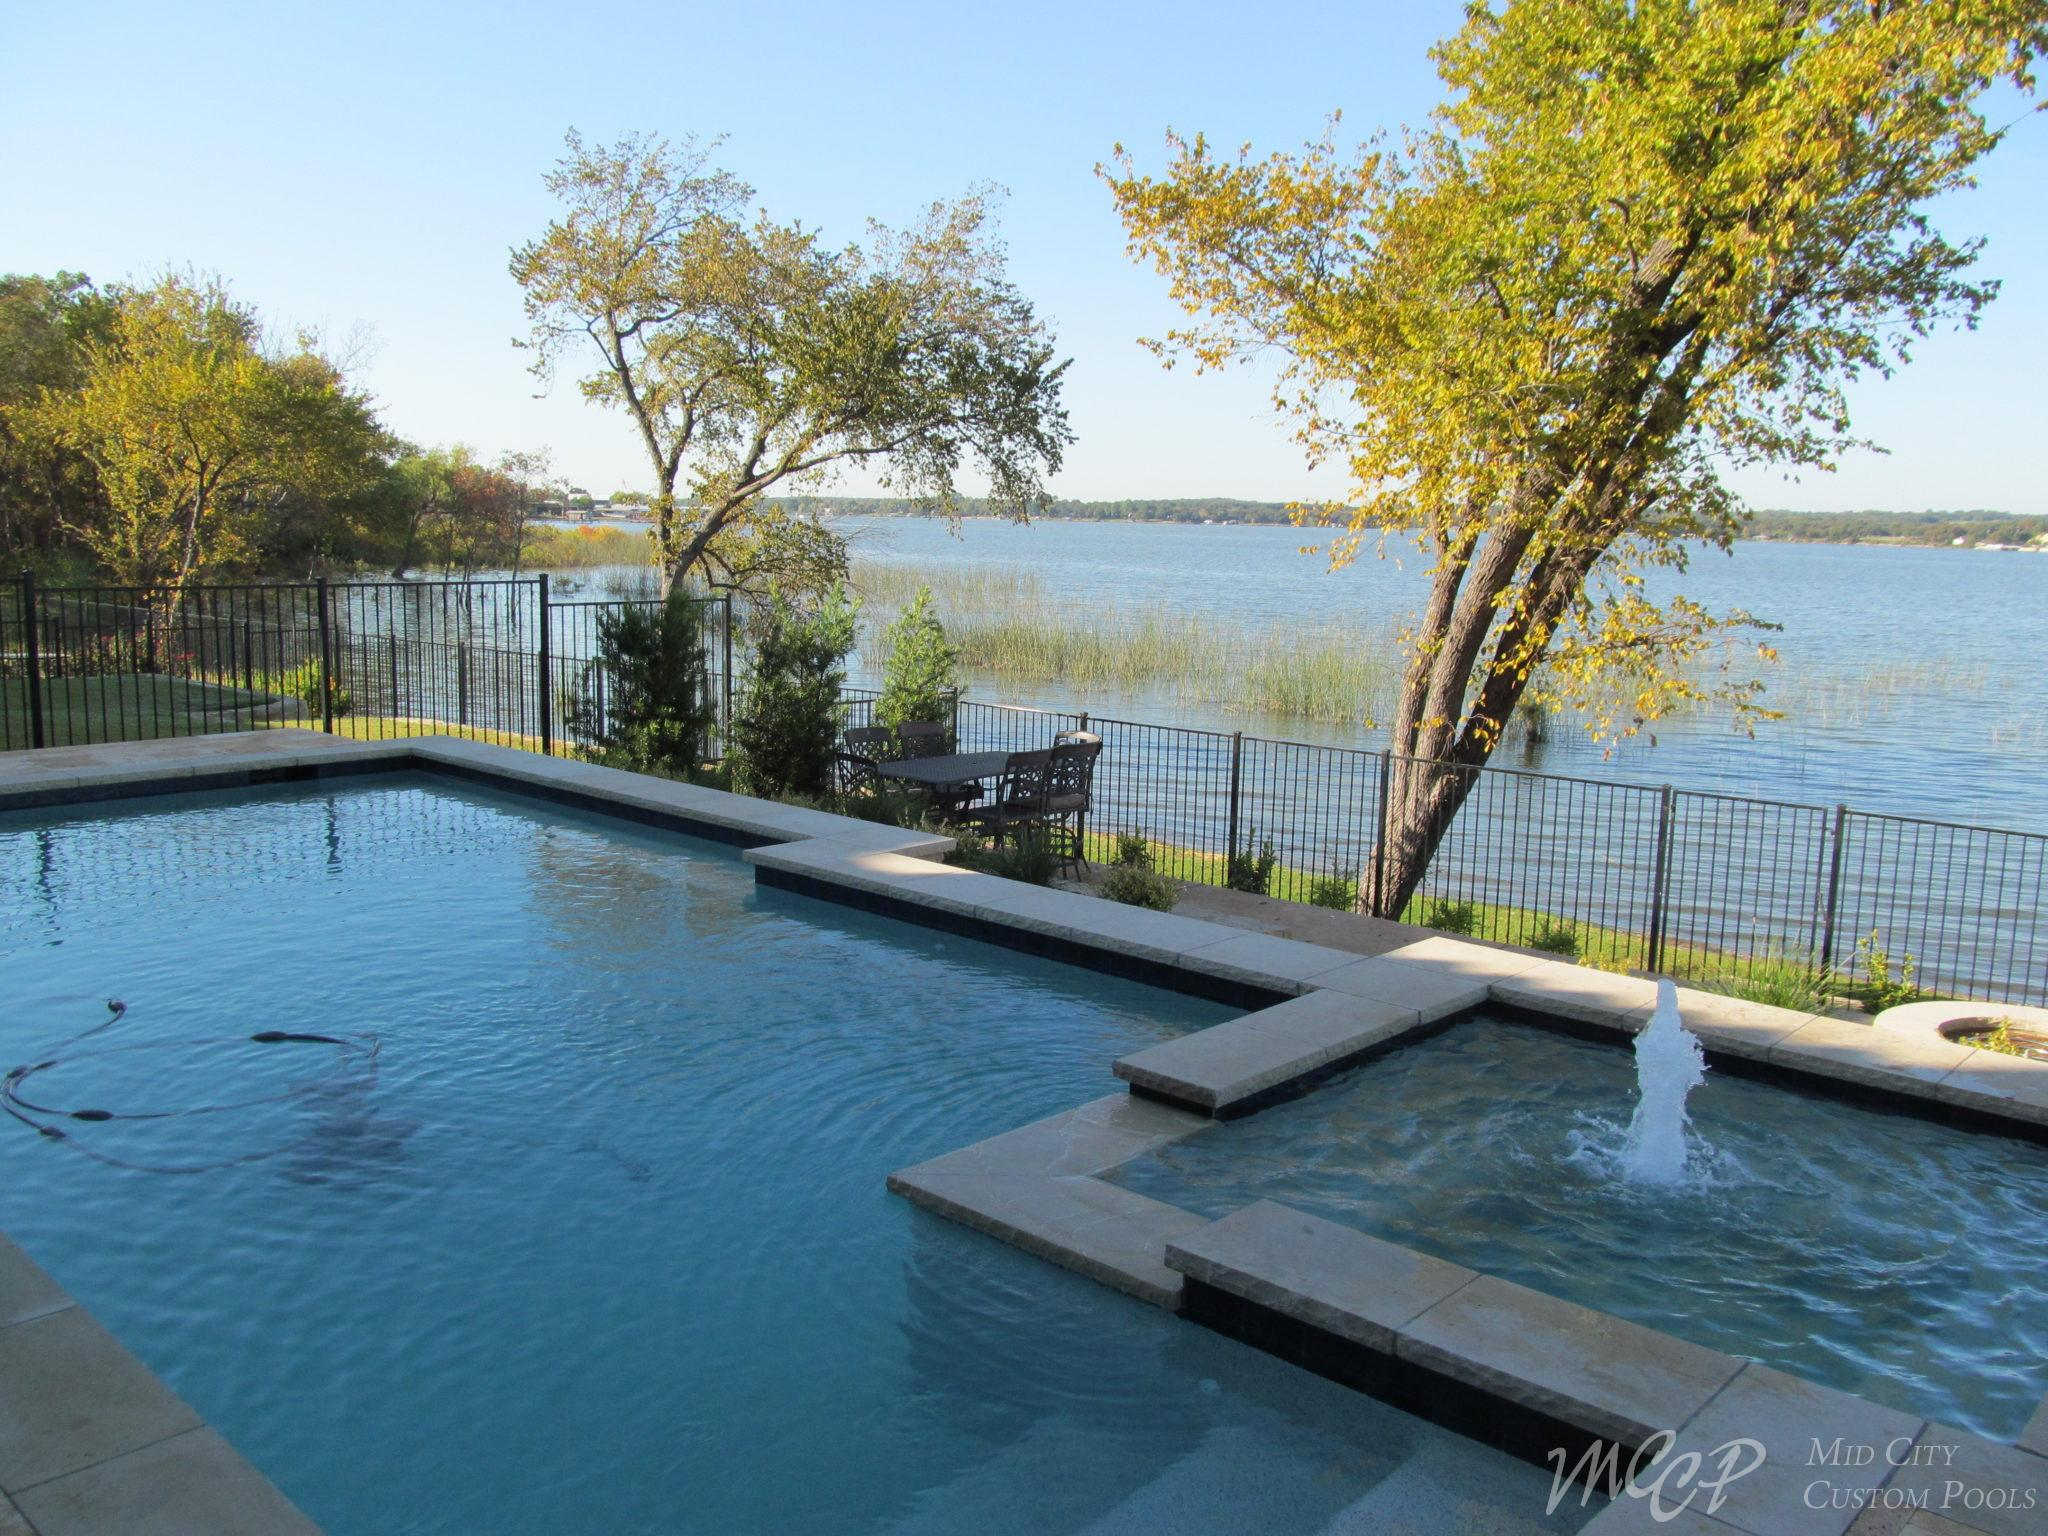 Custom pools you 39 ll love southlake fort worth dfw texas for City of fort worth public swimming pools